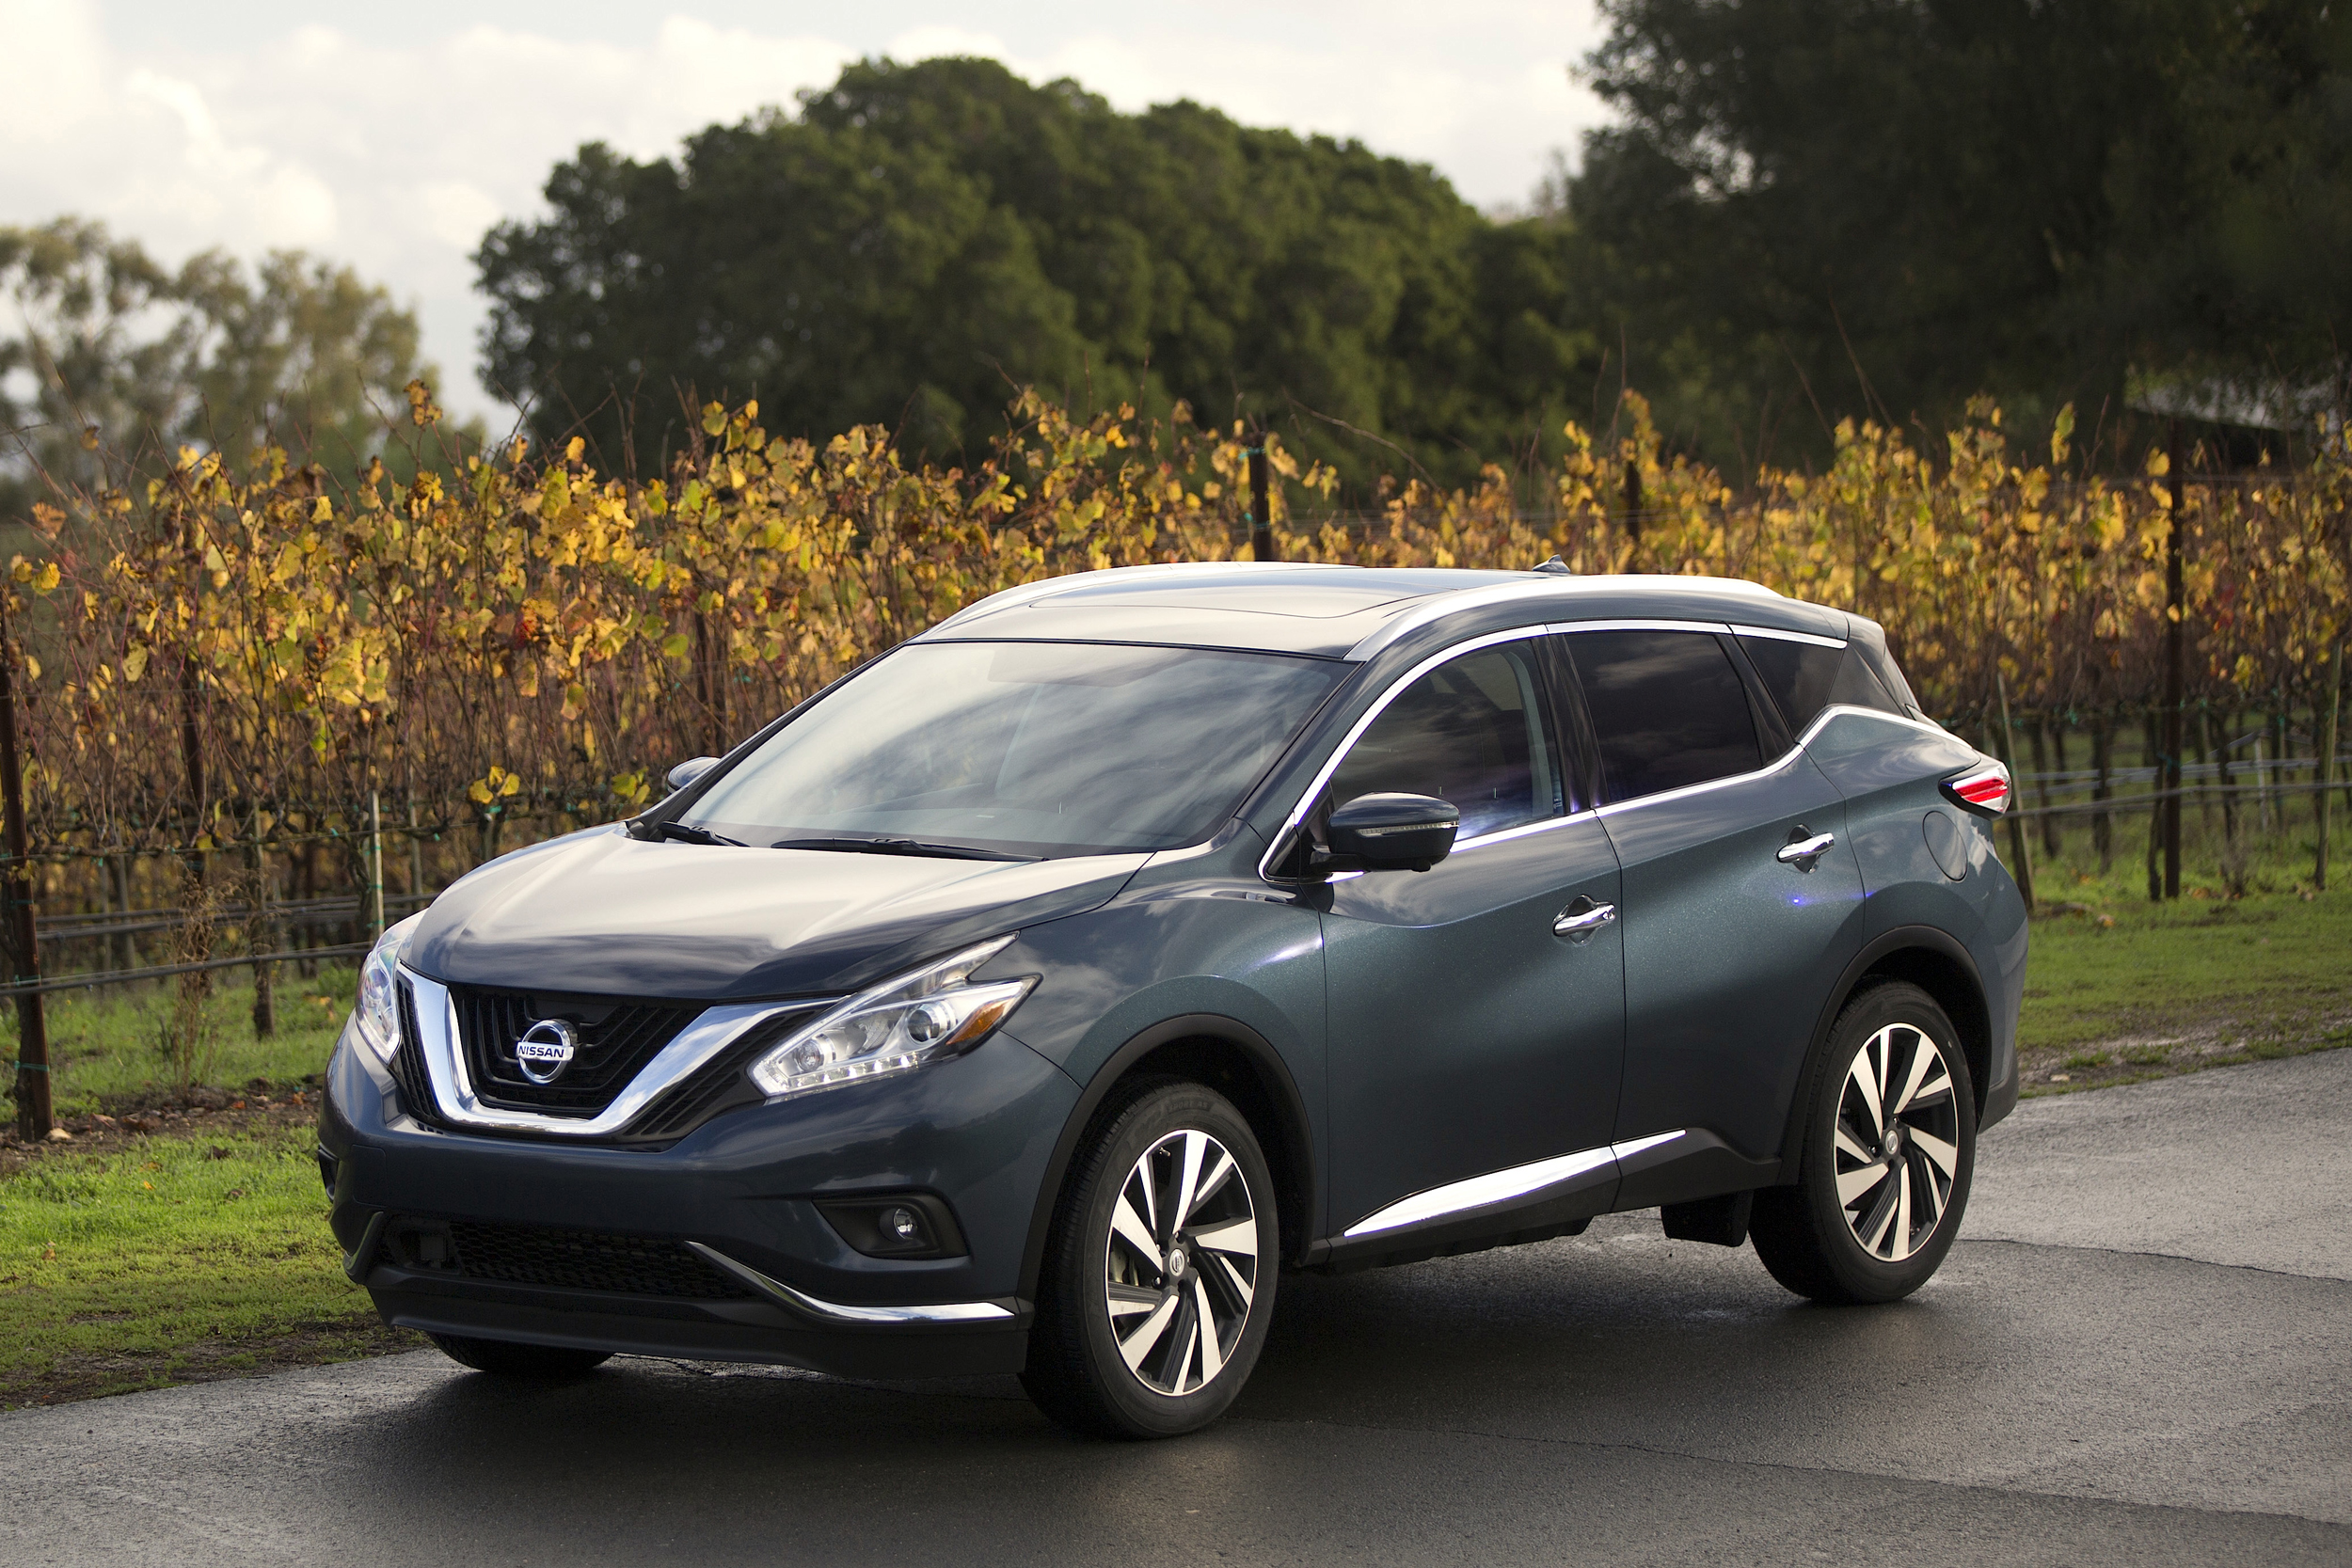 price models nissan murano olympia